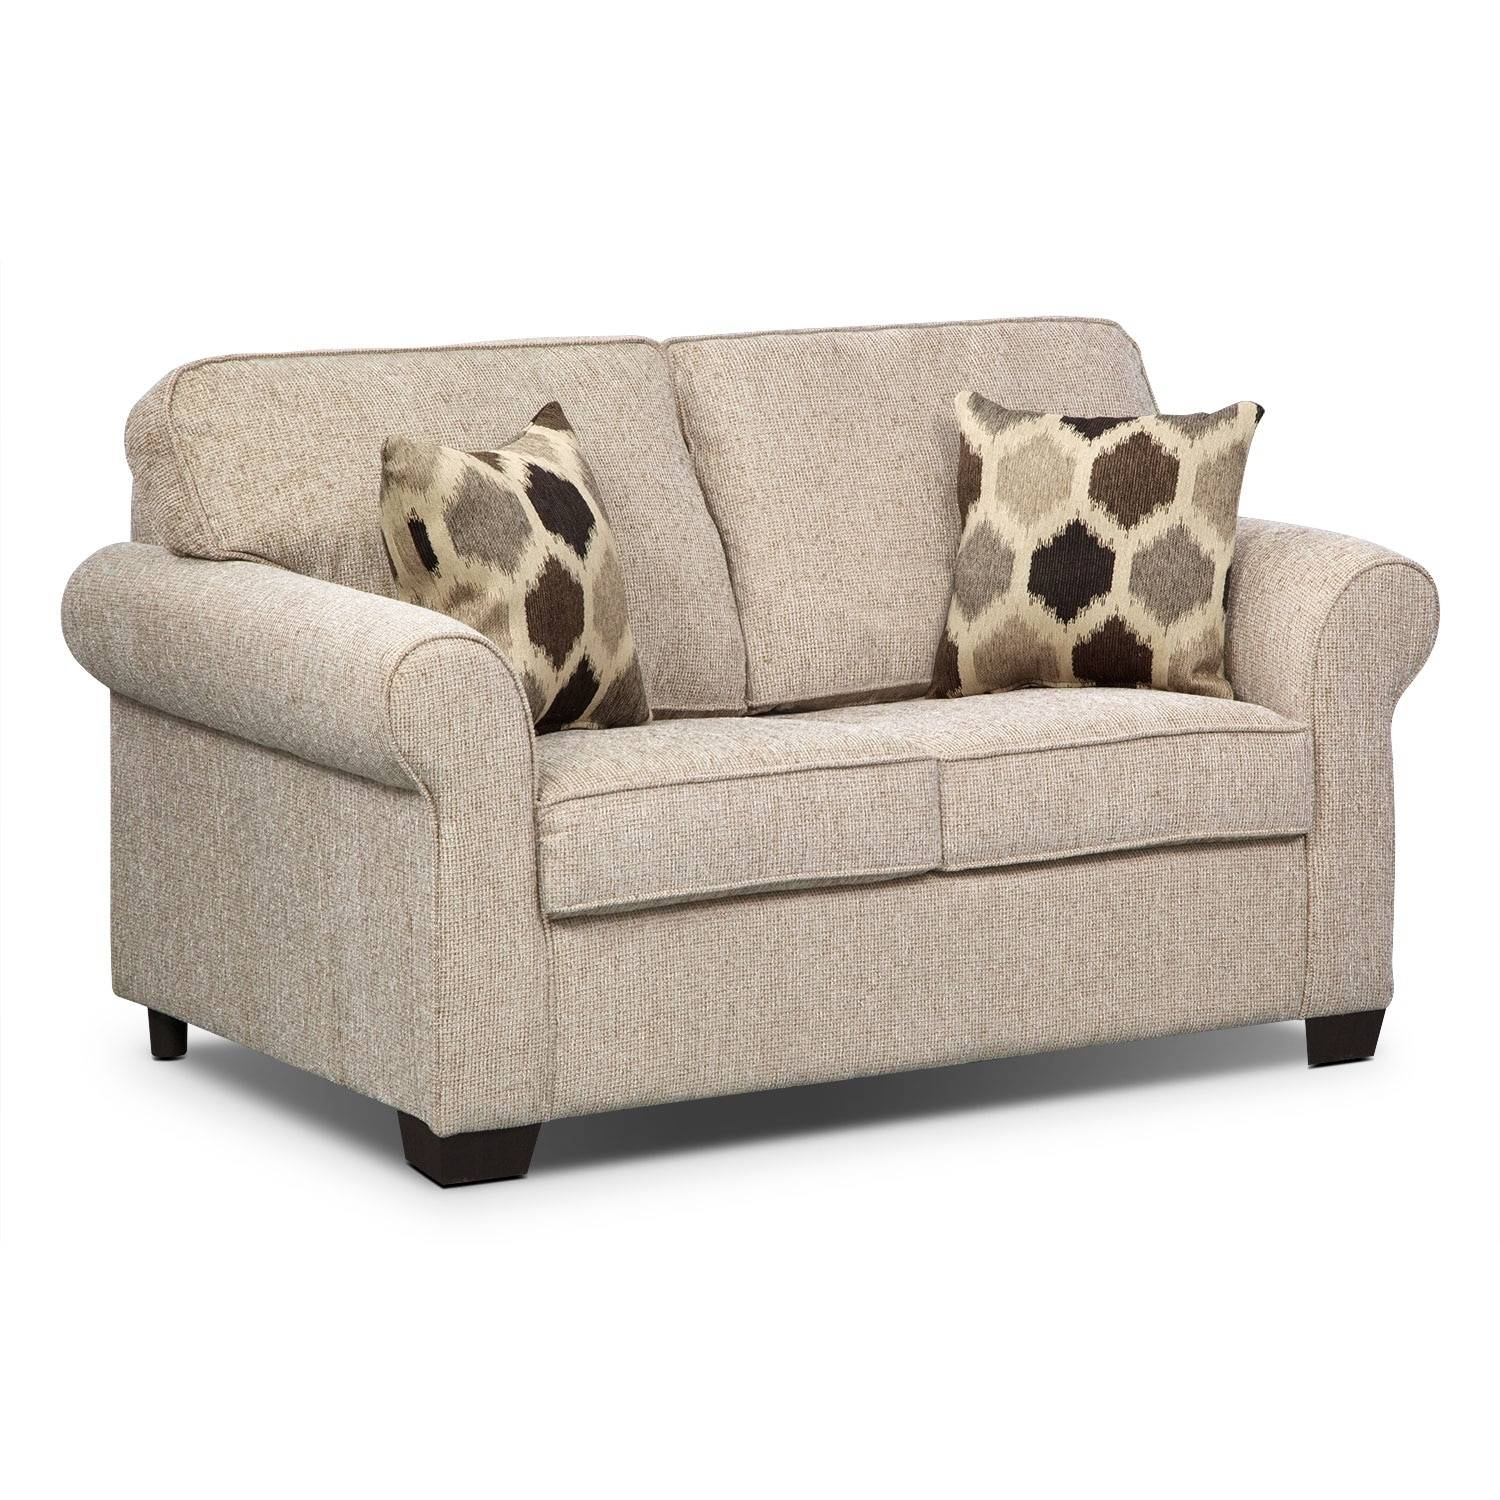 Fletcher Full Innerspring Sleeper Sofa – Beige | Value City Furniture Regarding City Sofa Beds (View 9 of 30)